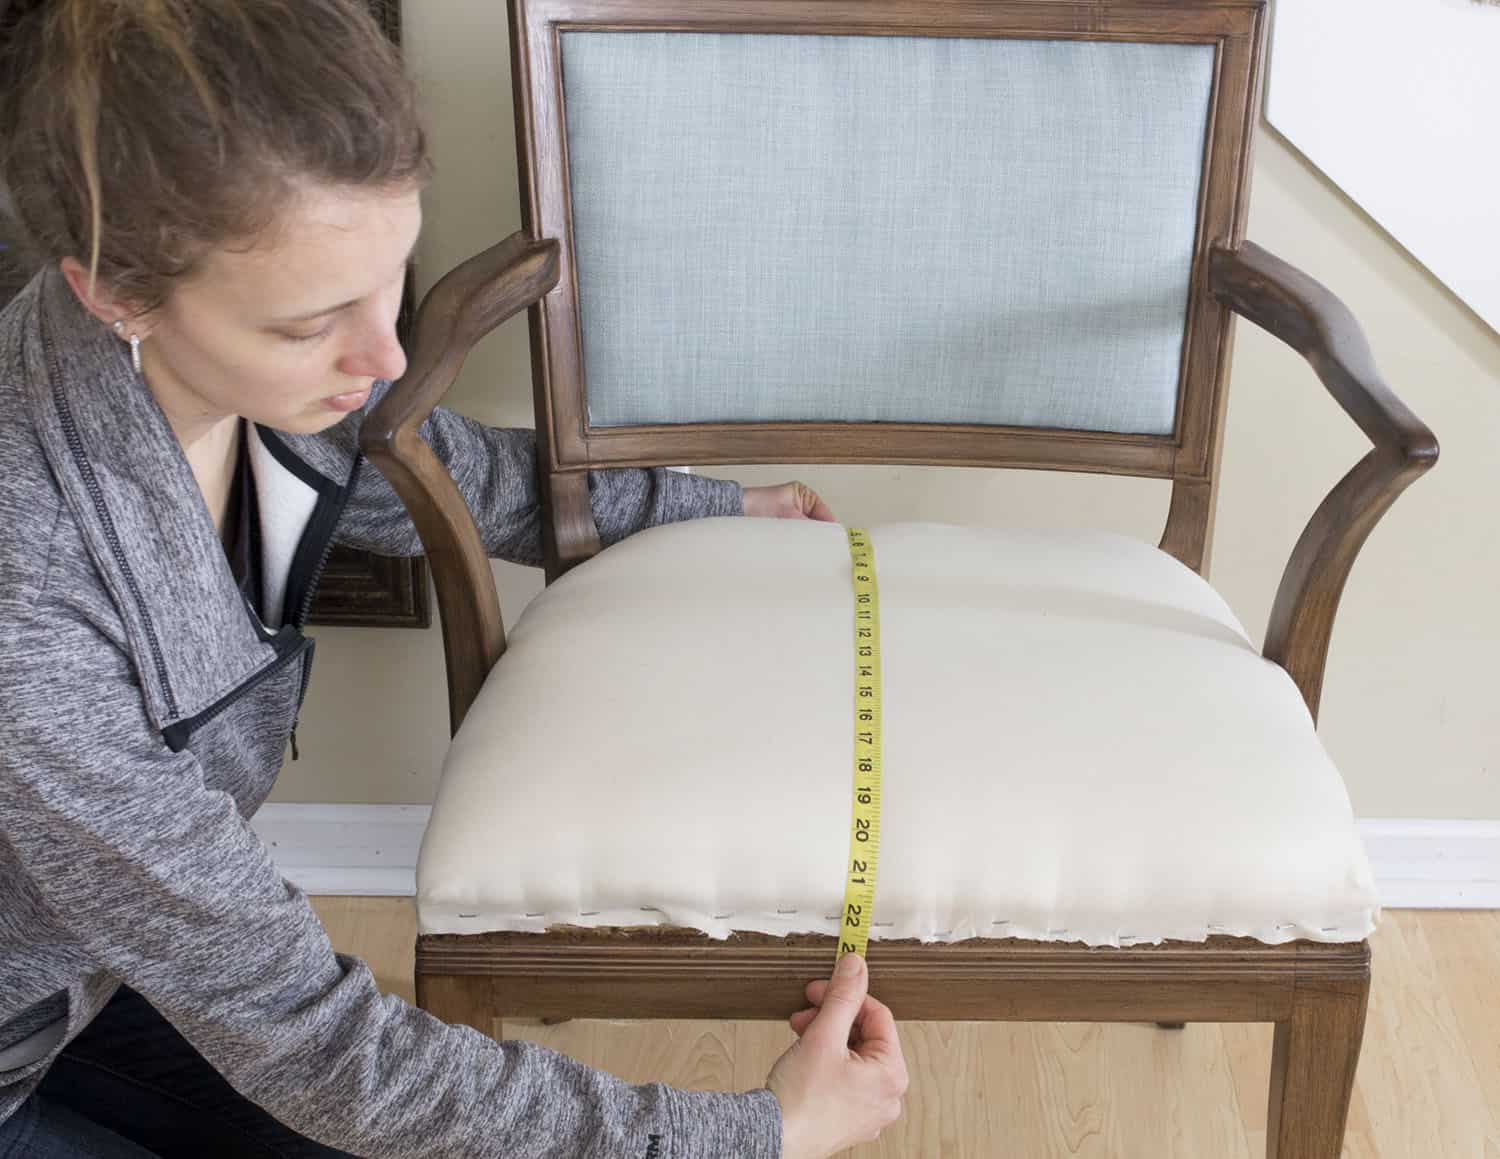 Upholstery Measure for Top Layer